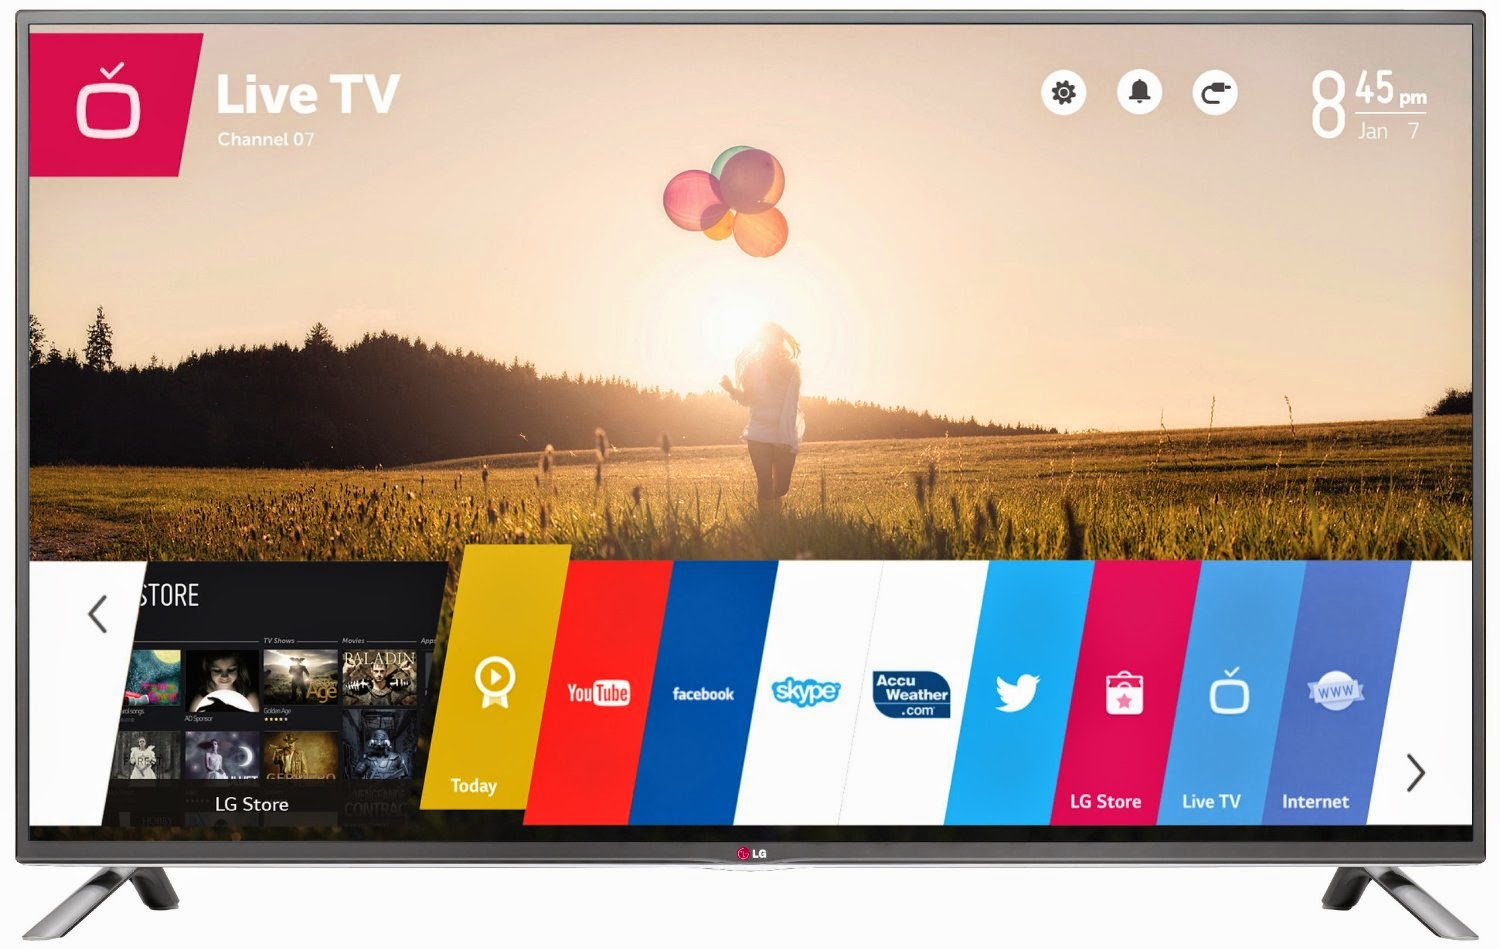 LG webOS Smart LED TV USER MANUAL PDF in 9 Languages for DOWNLOAD.